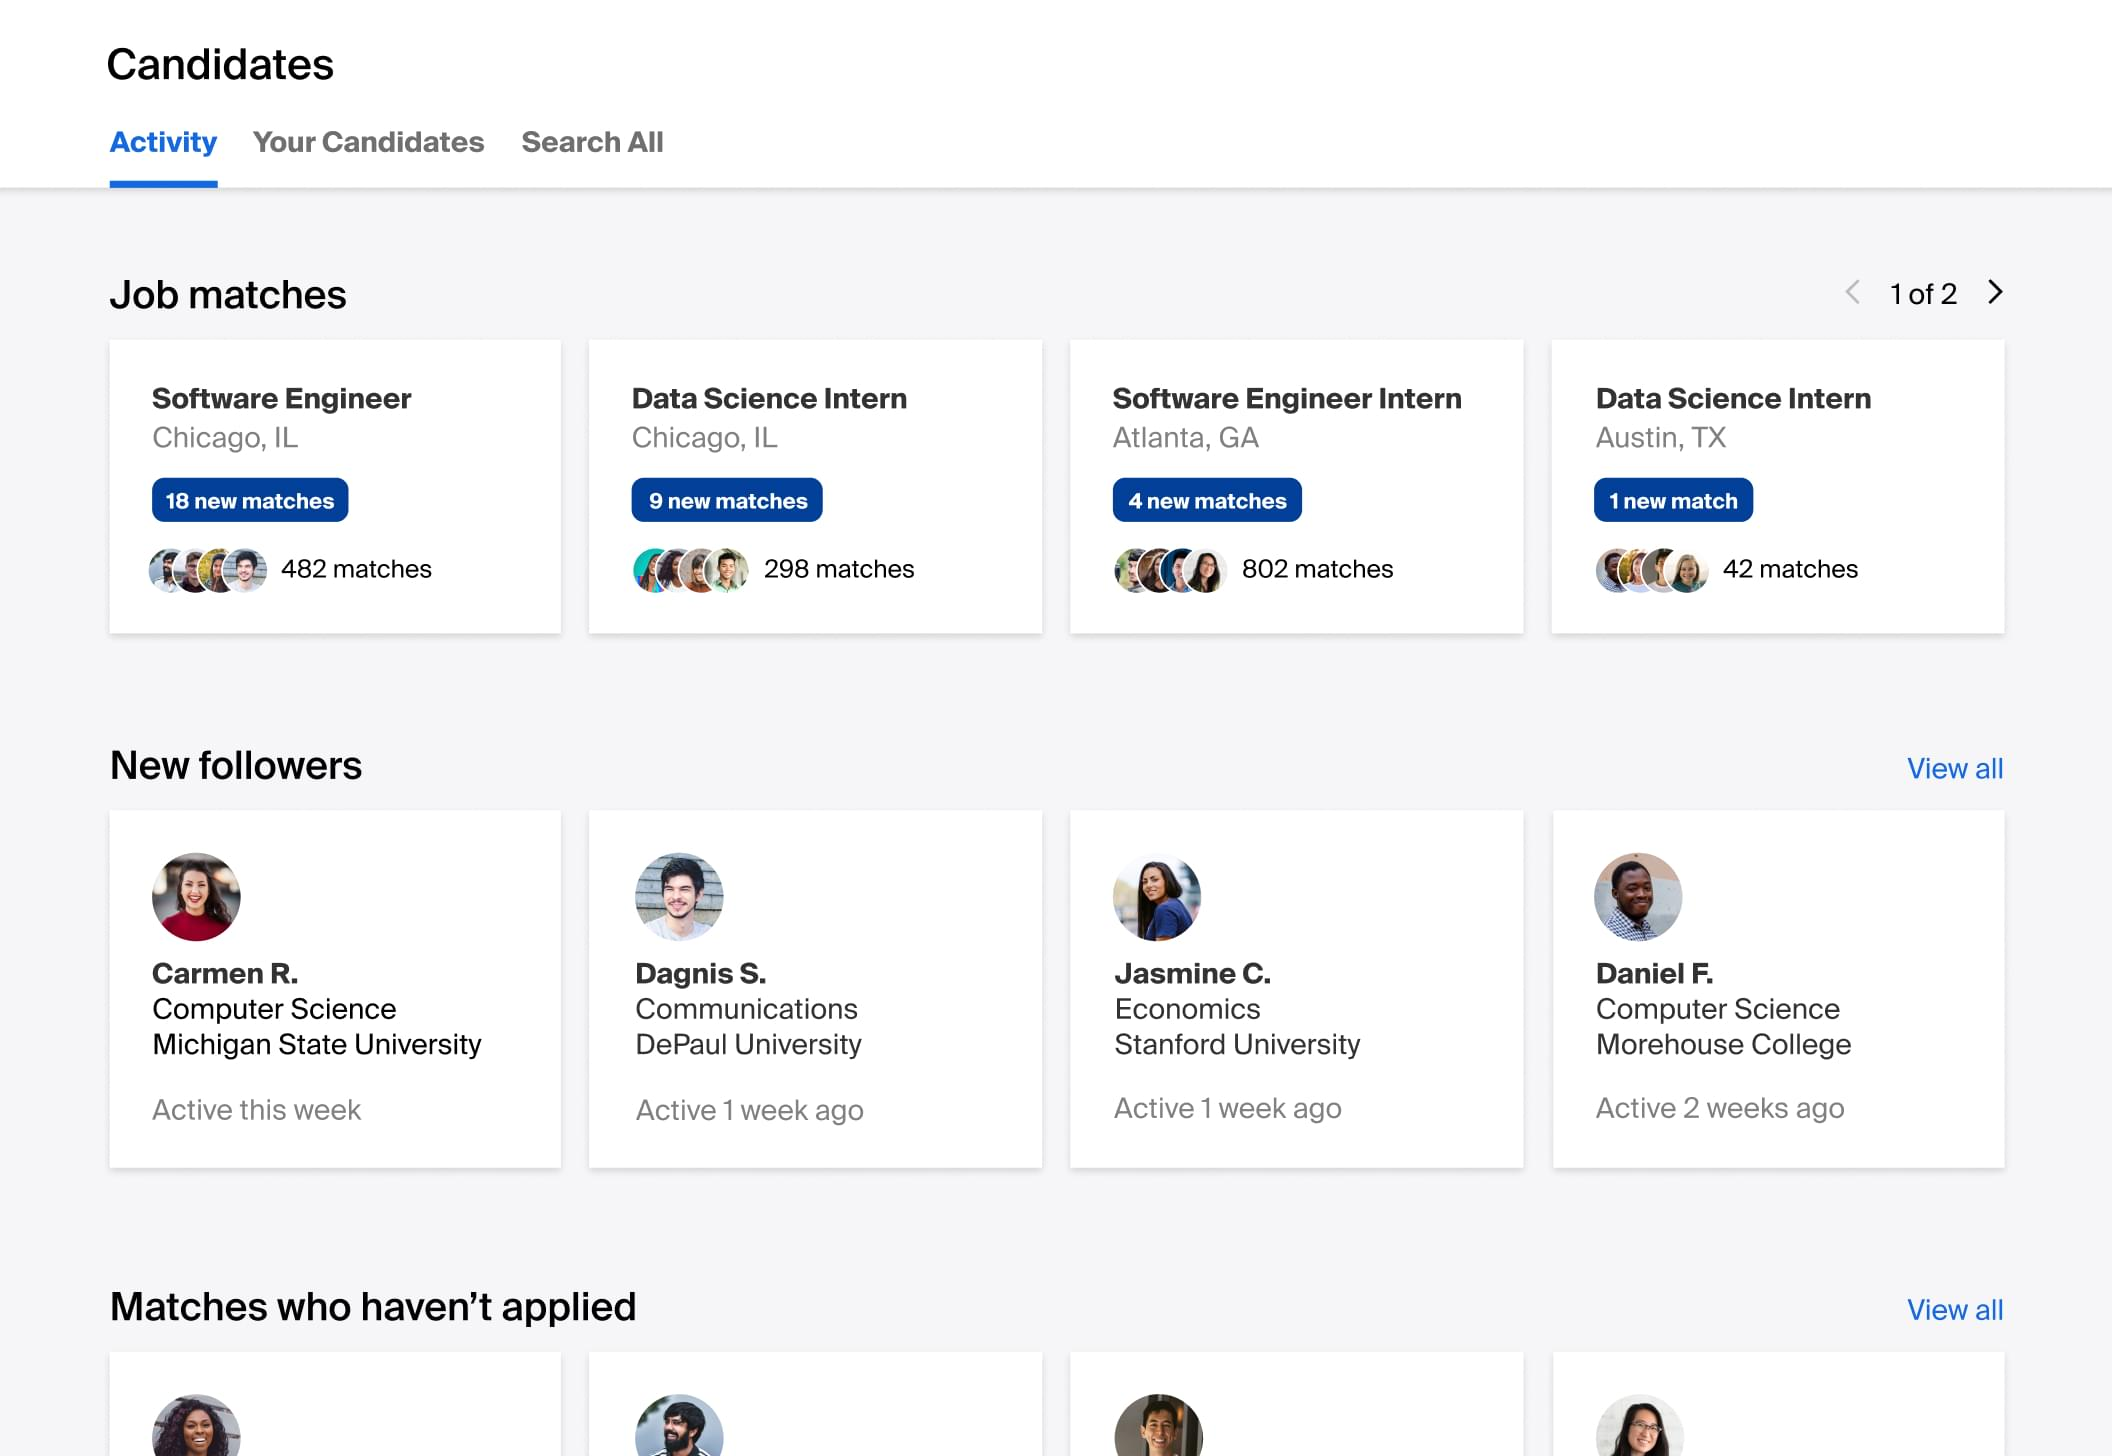 Get proactive talent matches based on your hiring needs